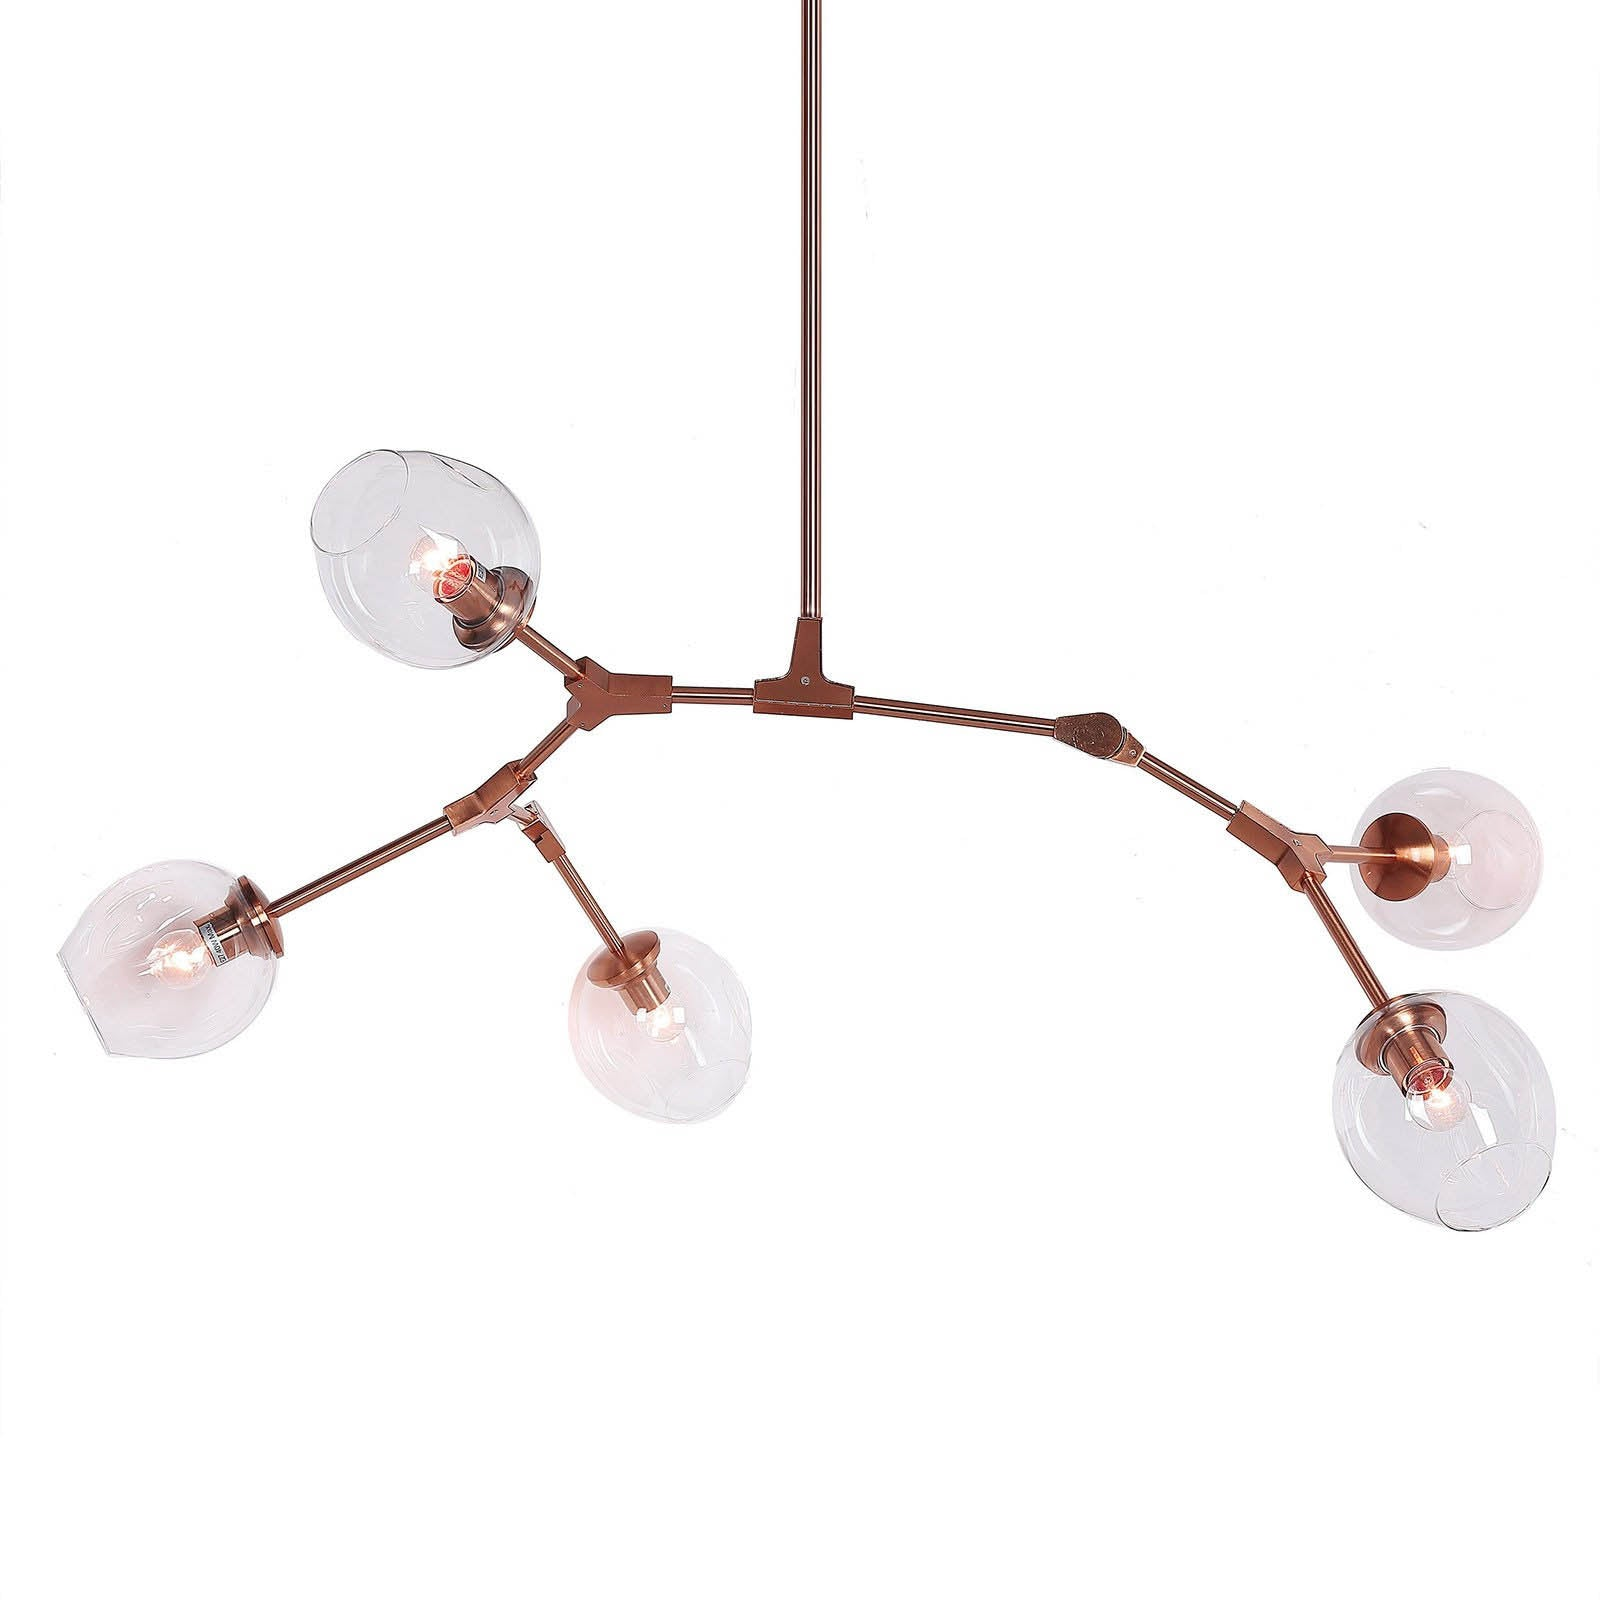 Branch 5 bubble Chandelier  CY-DD-275-5RG -  ثريا ذو 5 رؤوس - Shop Online Furniture and Home Decor Store in Dubai, UAE at ebarza